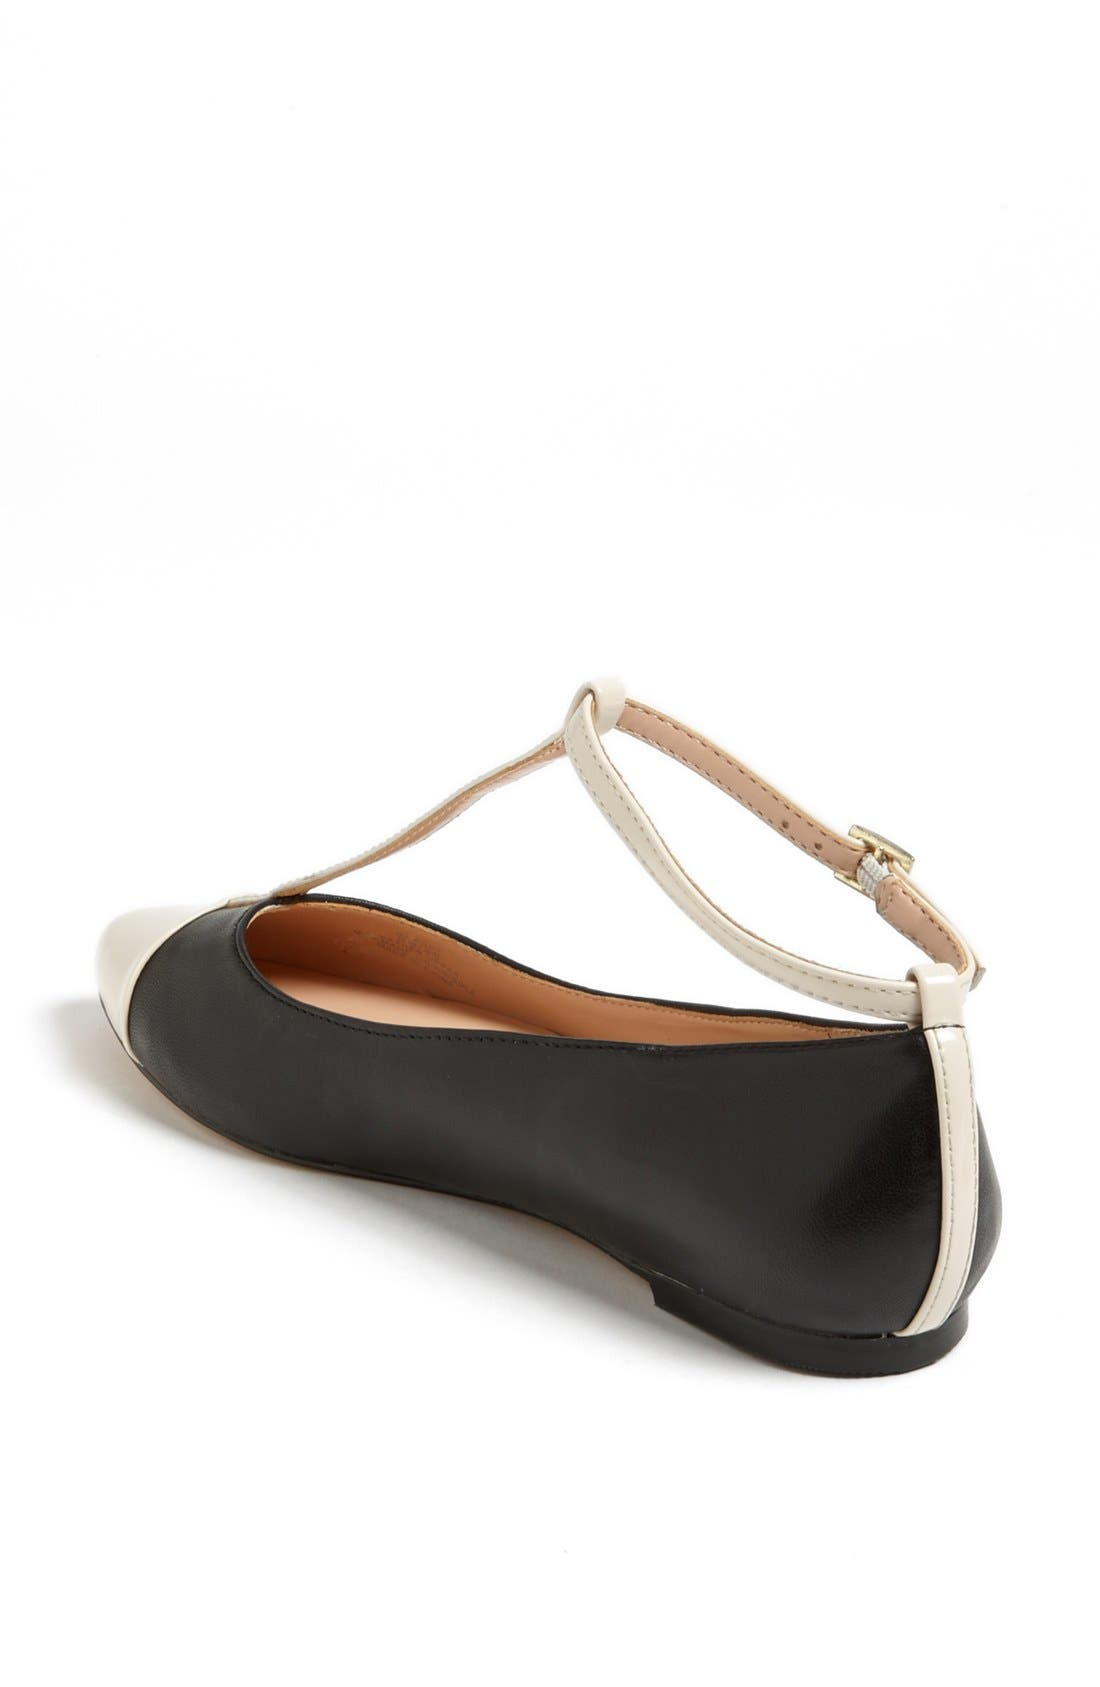 Julianne Hough for Sole Society 'Addy' Flat,                             Alternate thumbnail 4, color,                             001